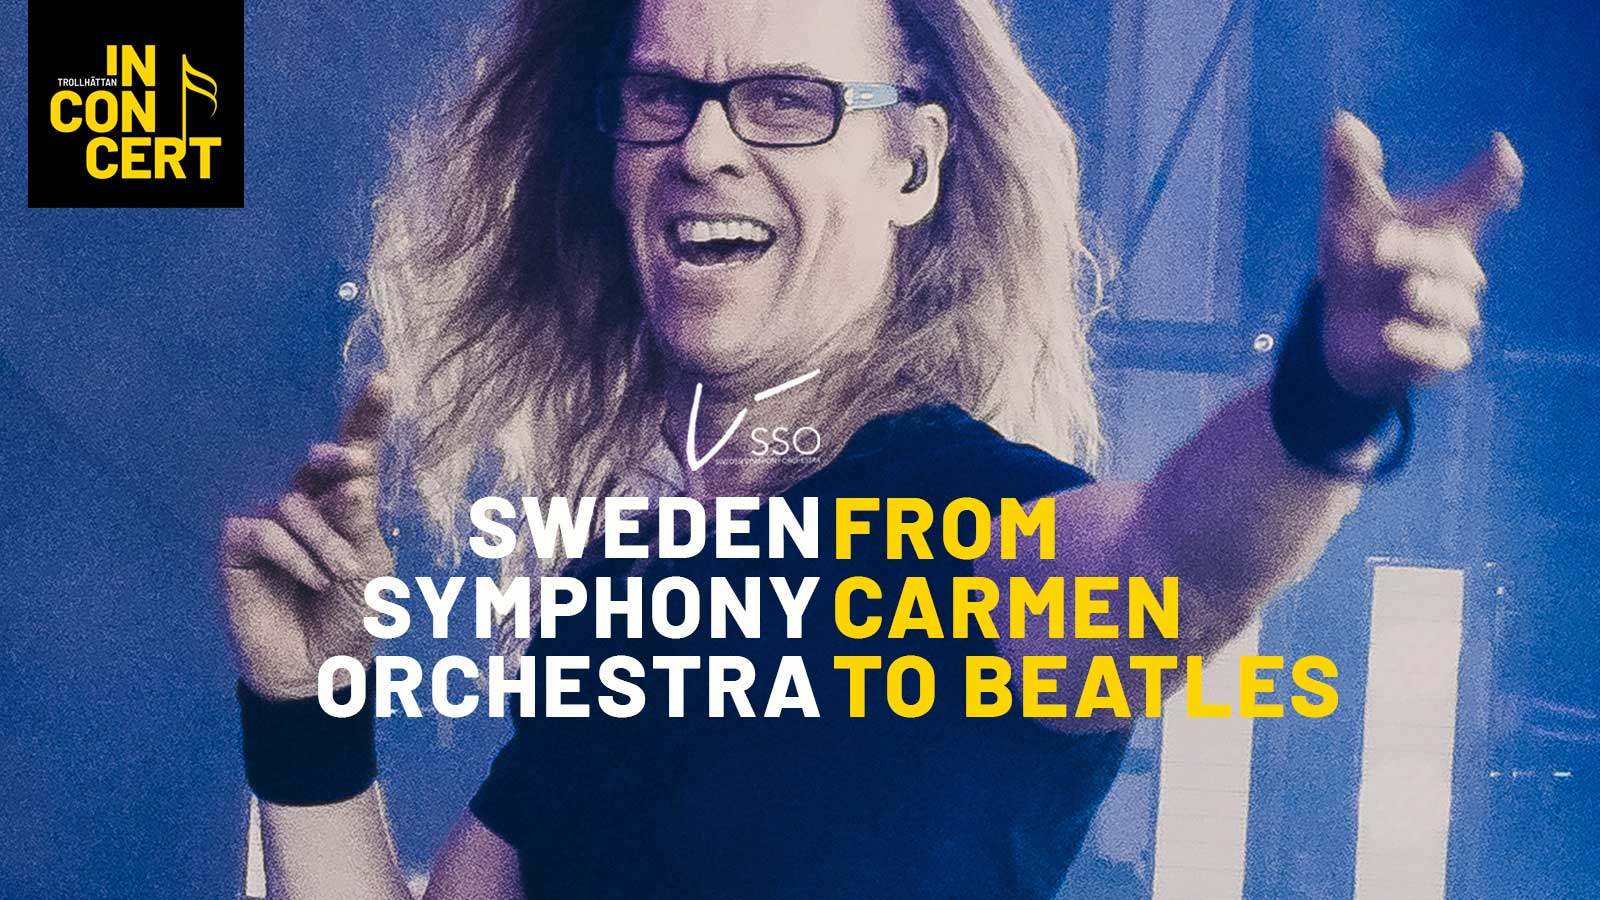 Sweden Symphony Orchestra - From Carmen To Beatles